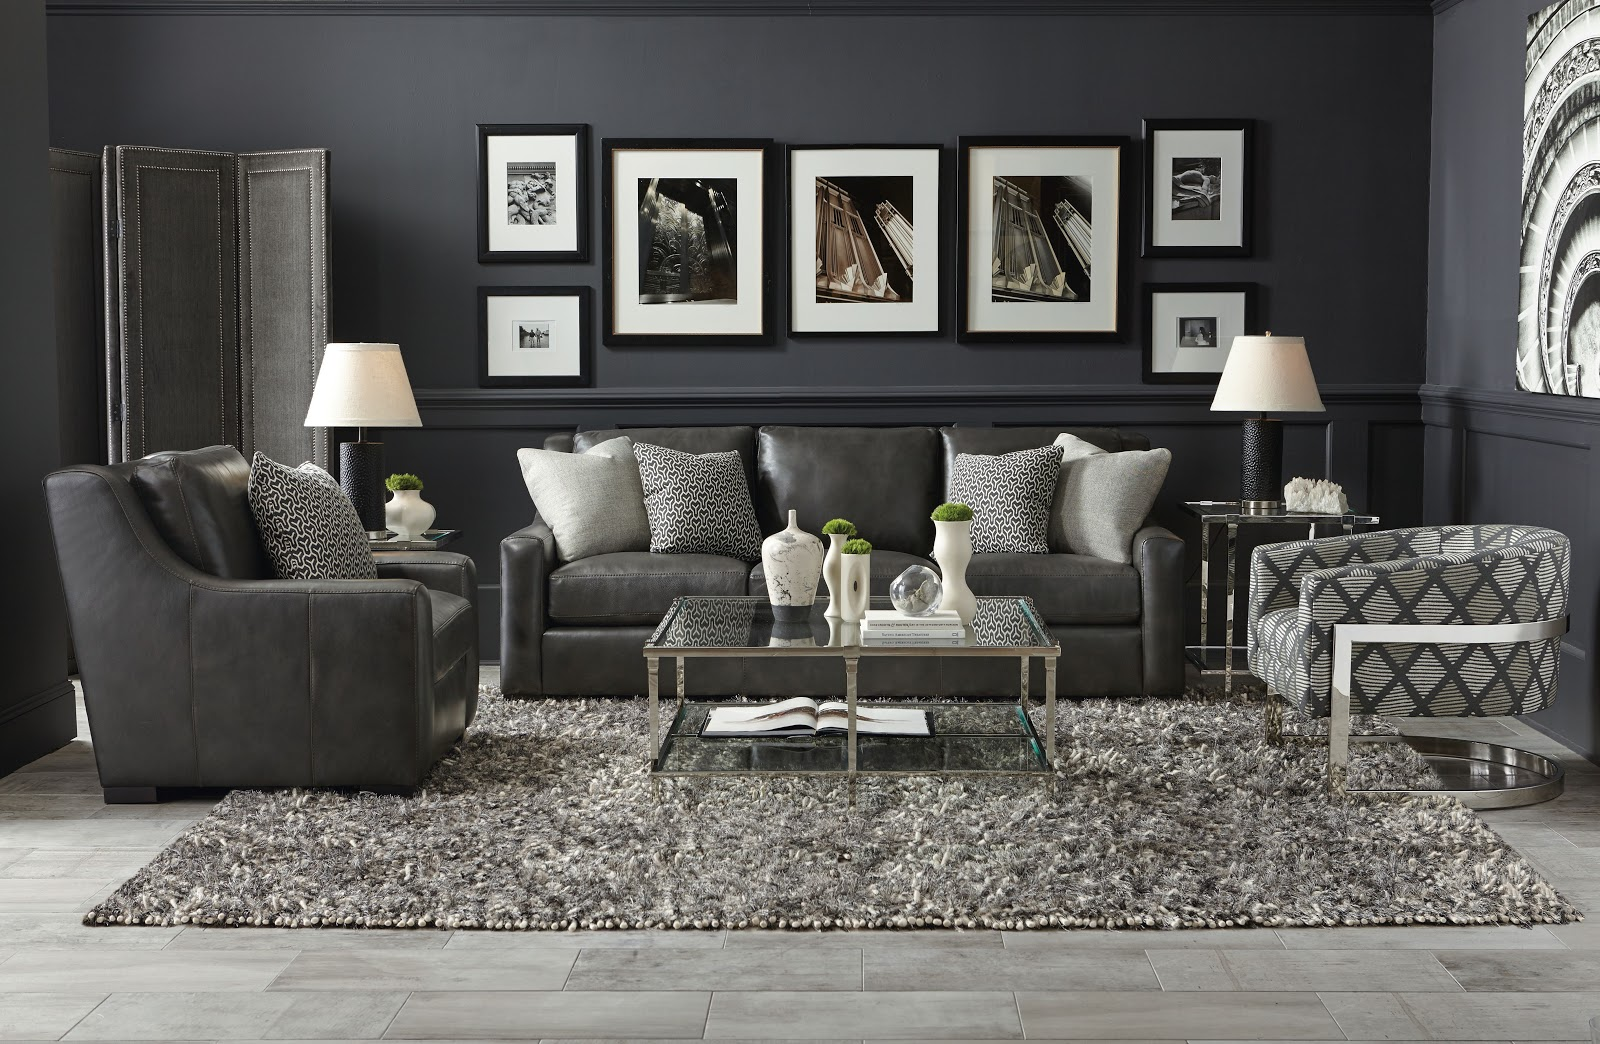 Simple Guide to Identify Different Furniture Styles